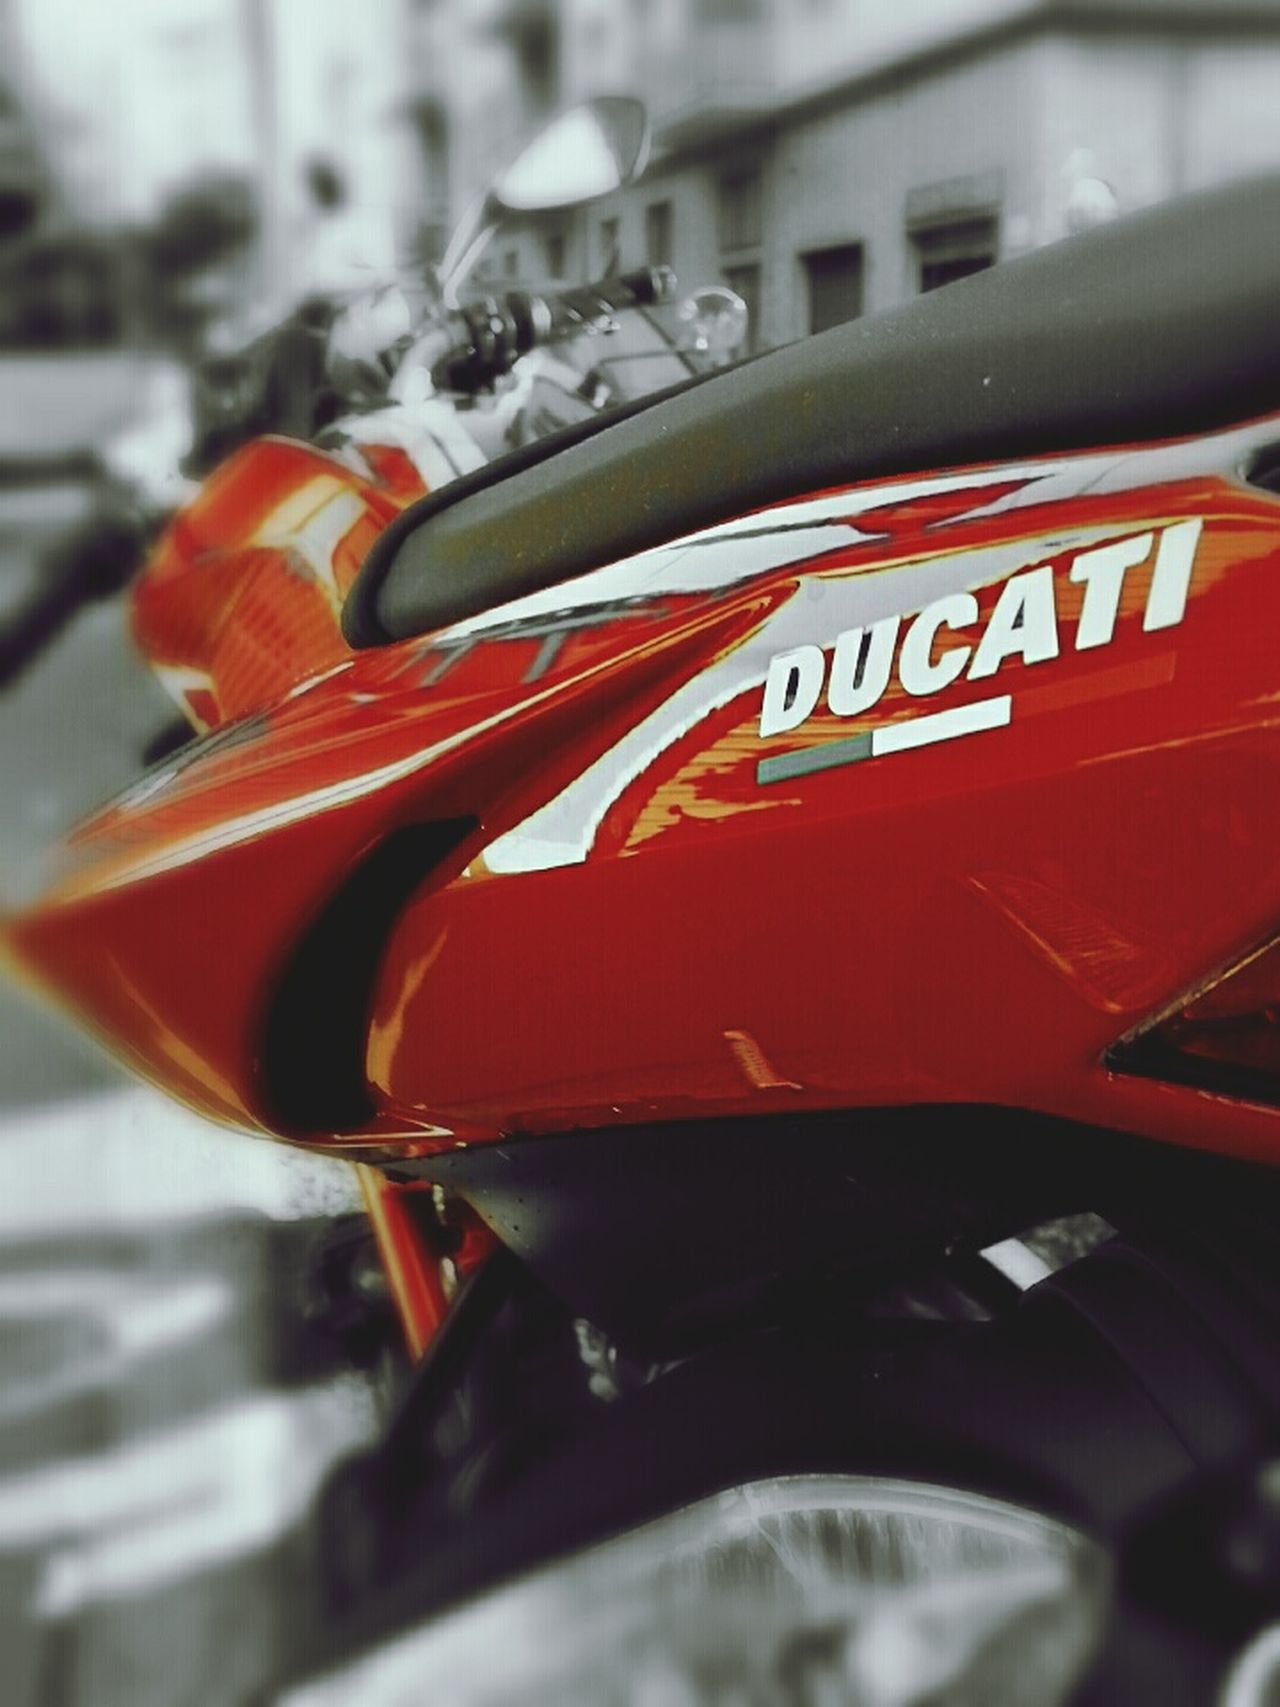 Ducatistreetfighter Ducatilover Varazze Samsung S3 Hello World Snapseed Autodesk Red Color EyeEm Best Shots First Eyeem Photo